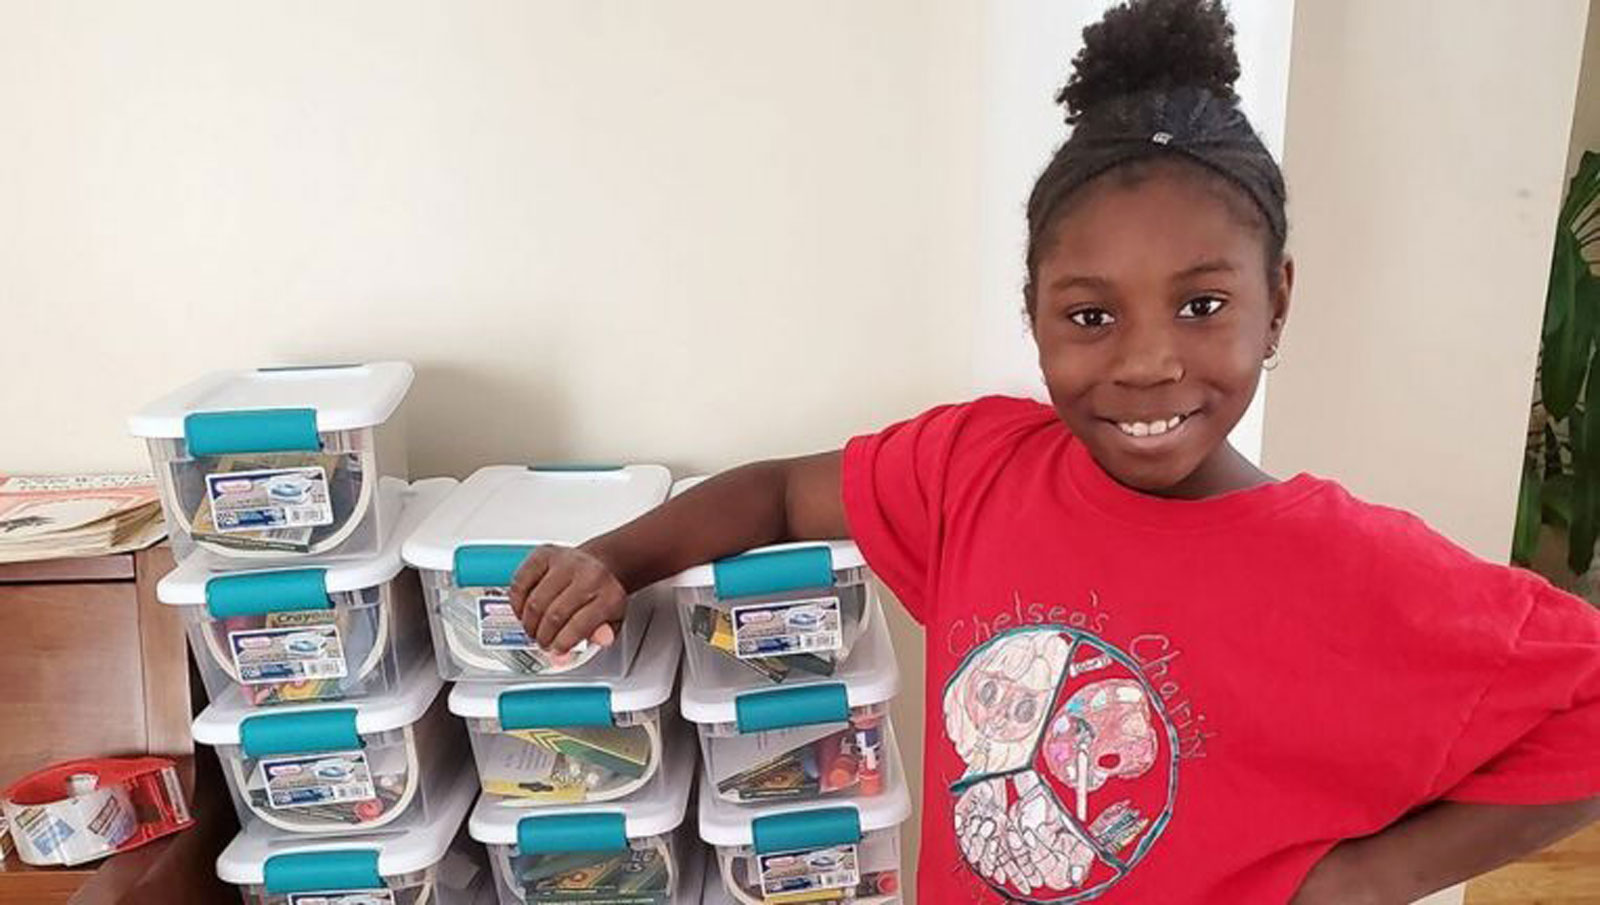 Chelsea Phaire, founder of Chelsea's Charity, poses with art kits she made for children in this photo provided by Candace Phaire to CNN in May 2020.